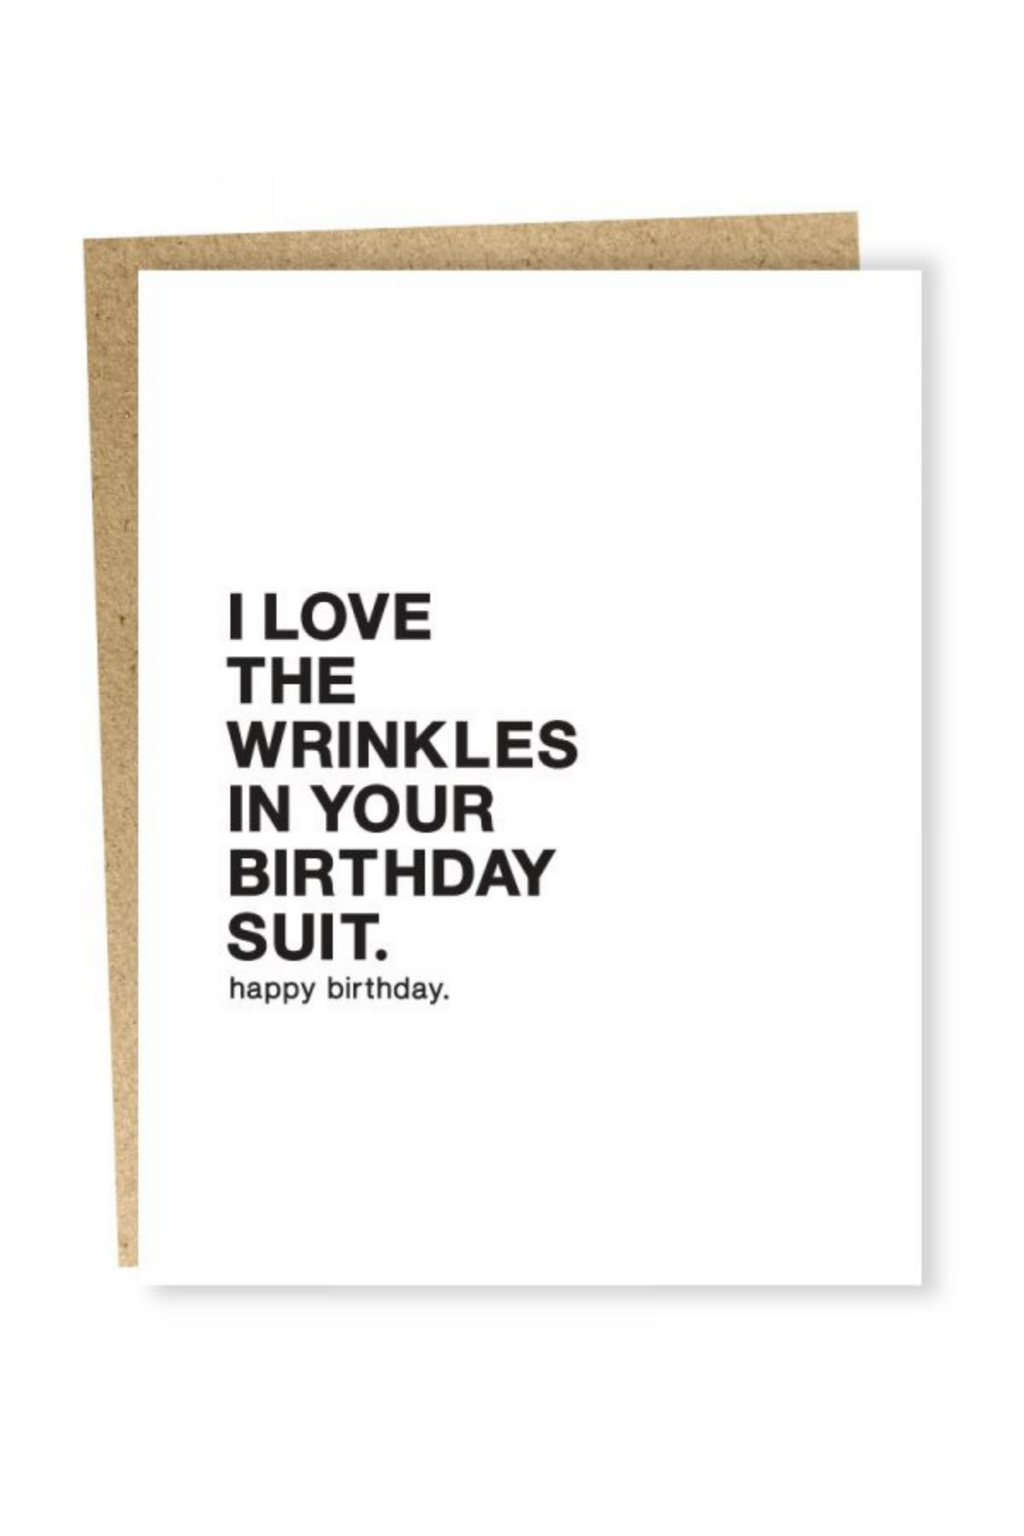 Make A Wish Birthday Suit Card